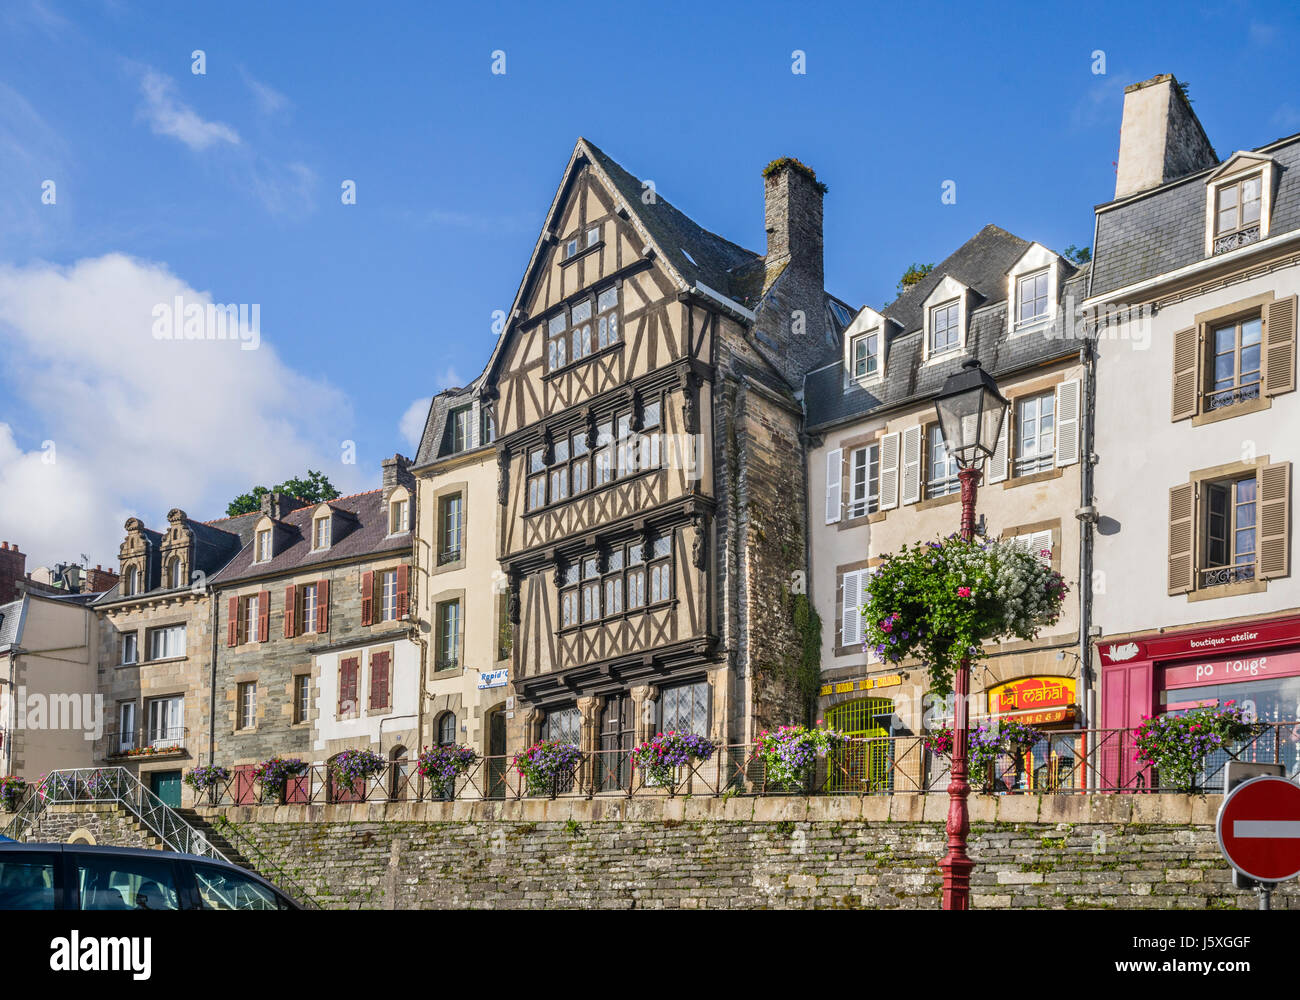 France, Brittany, Finistére department, Morlaix, Duchess Anne's House at Place Allende - Stock Image